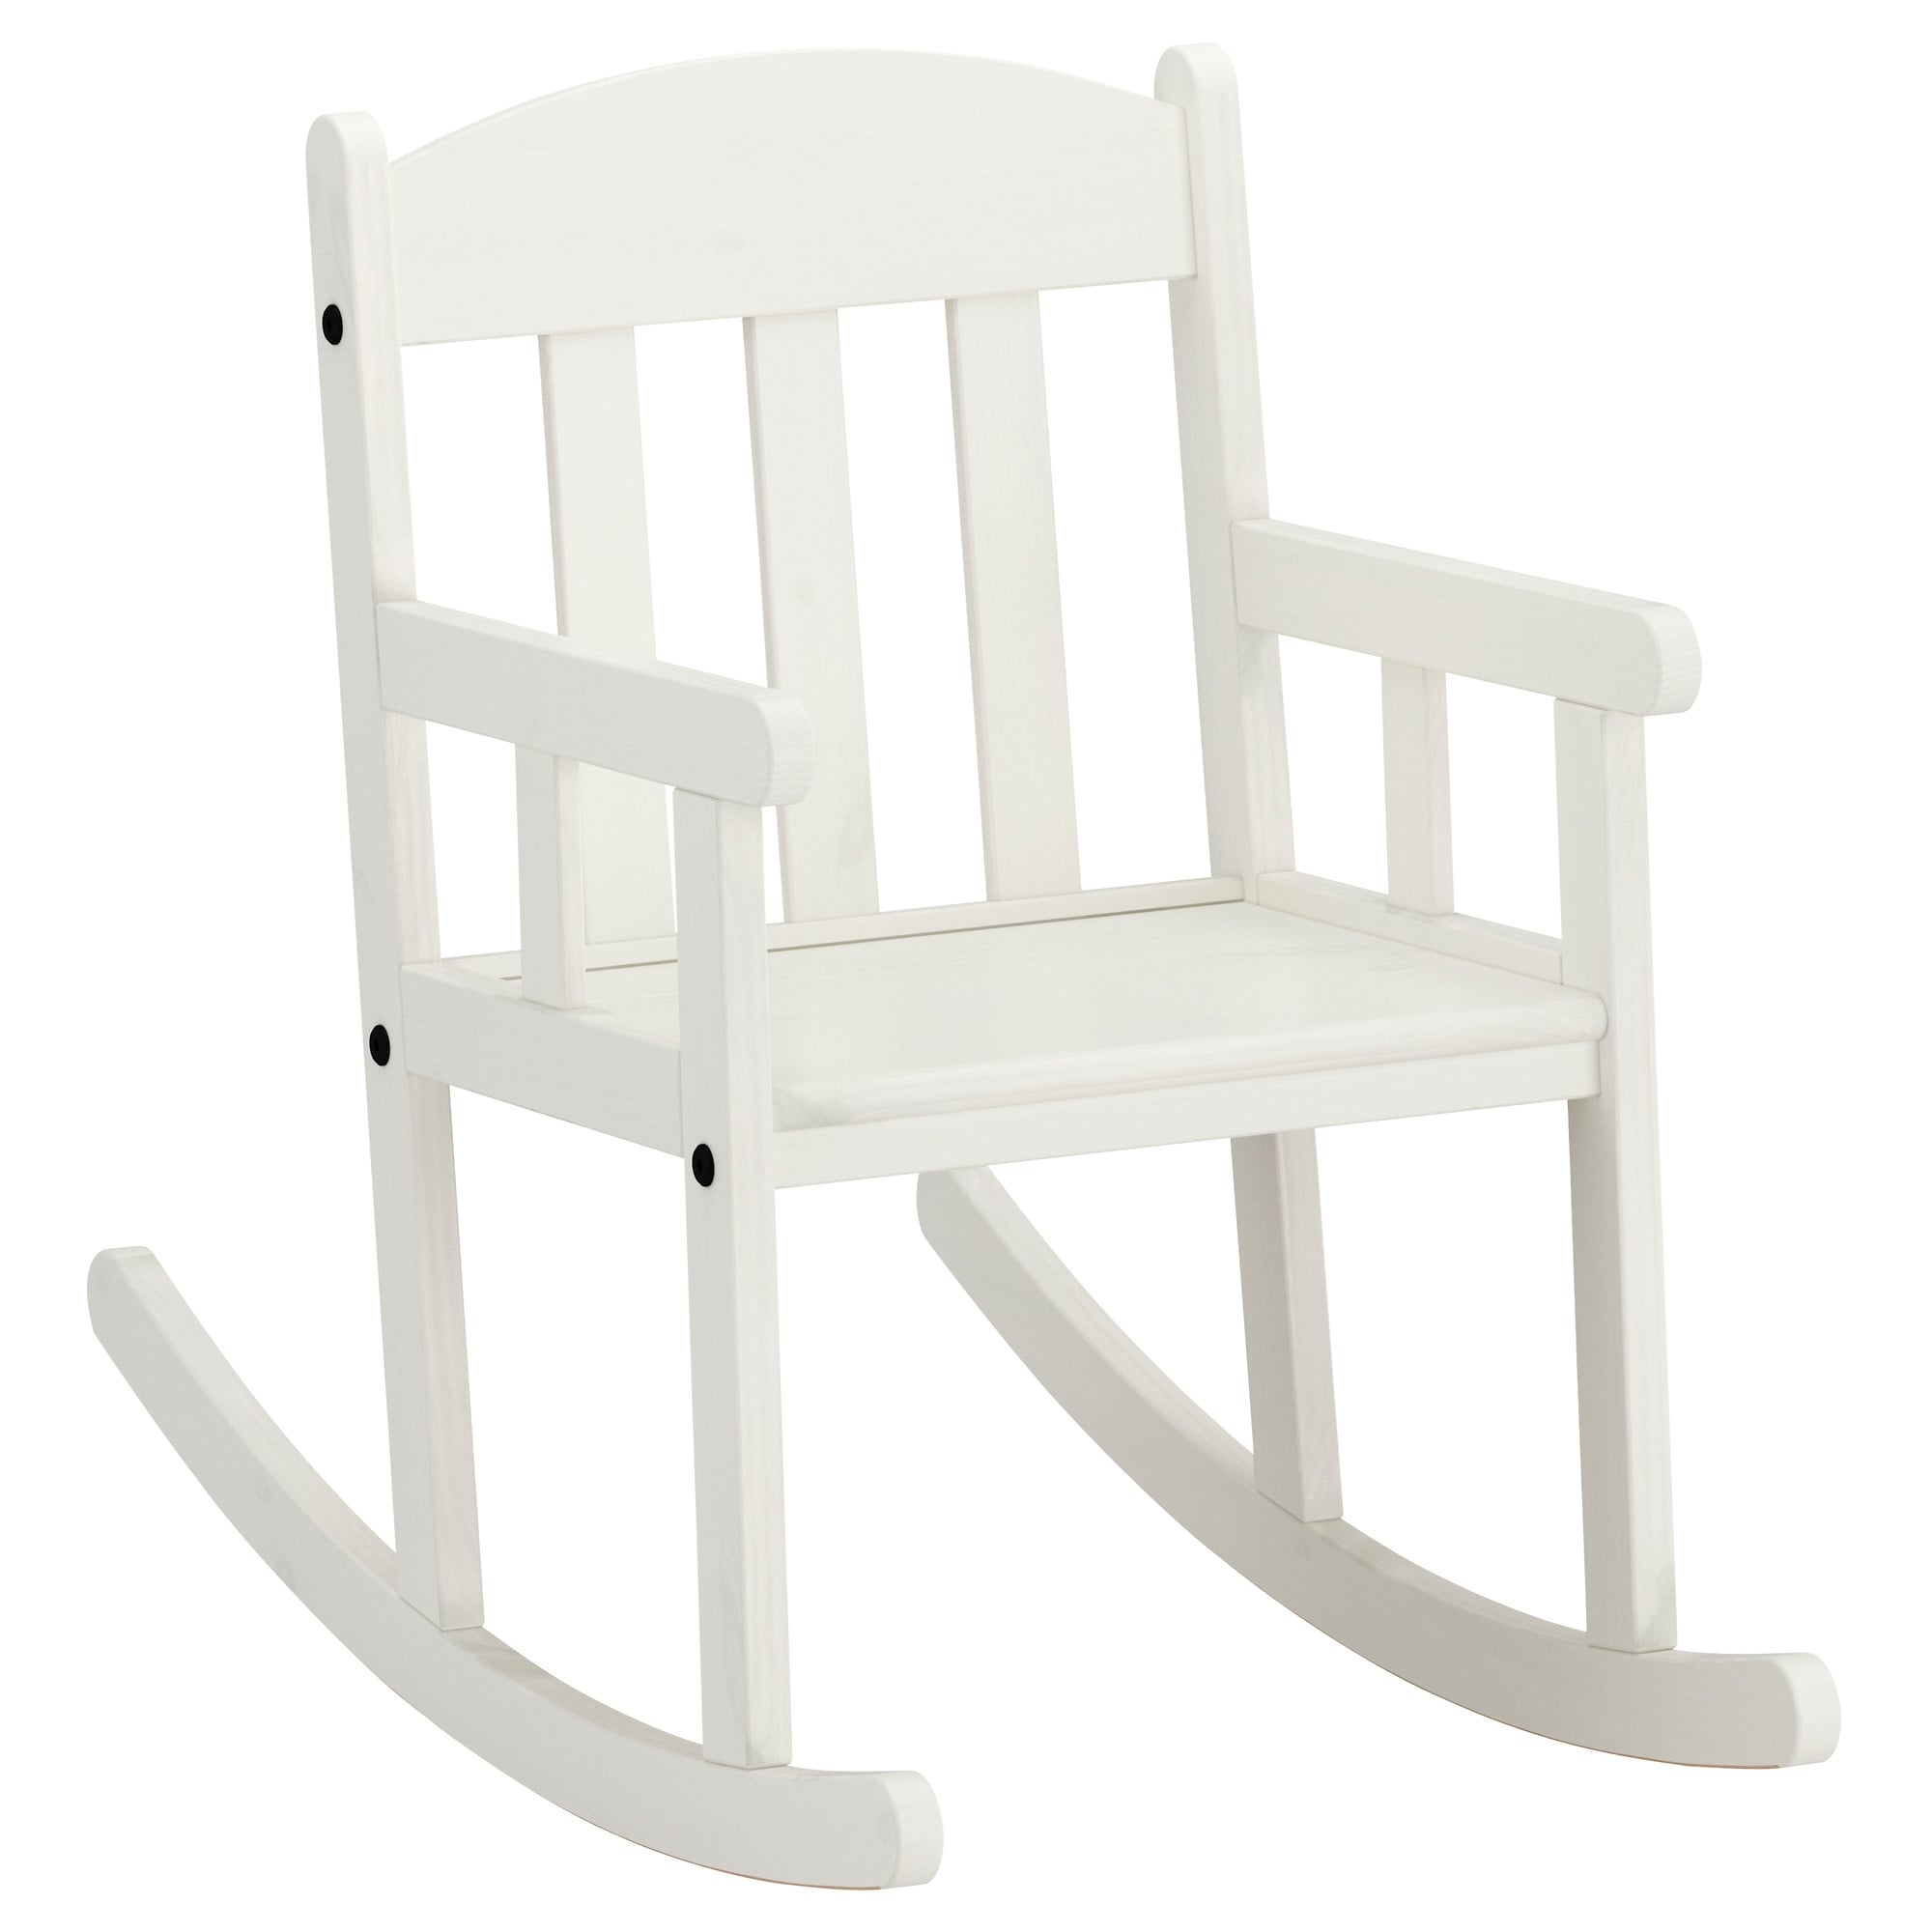 Sundvik Childrens Rocking Chair – Ikea Within 2018 Rocking Chairs At Ikea (View 10 of 15)